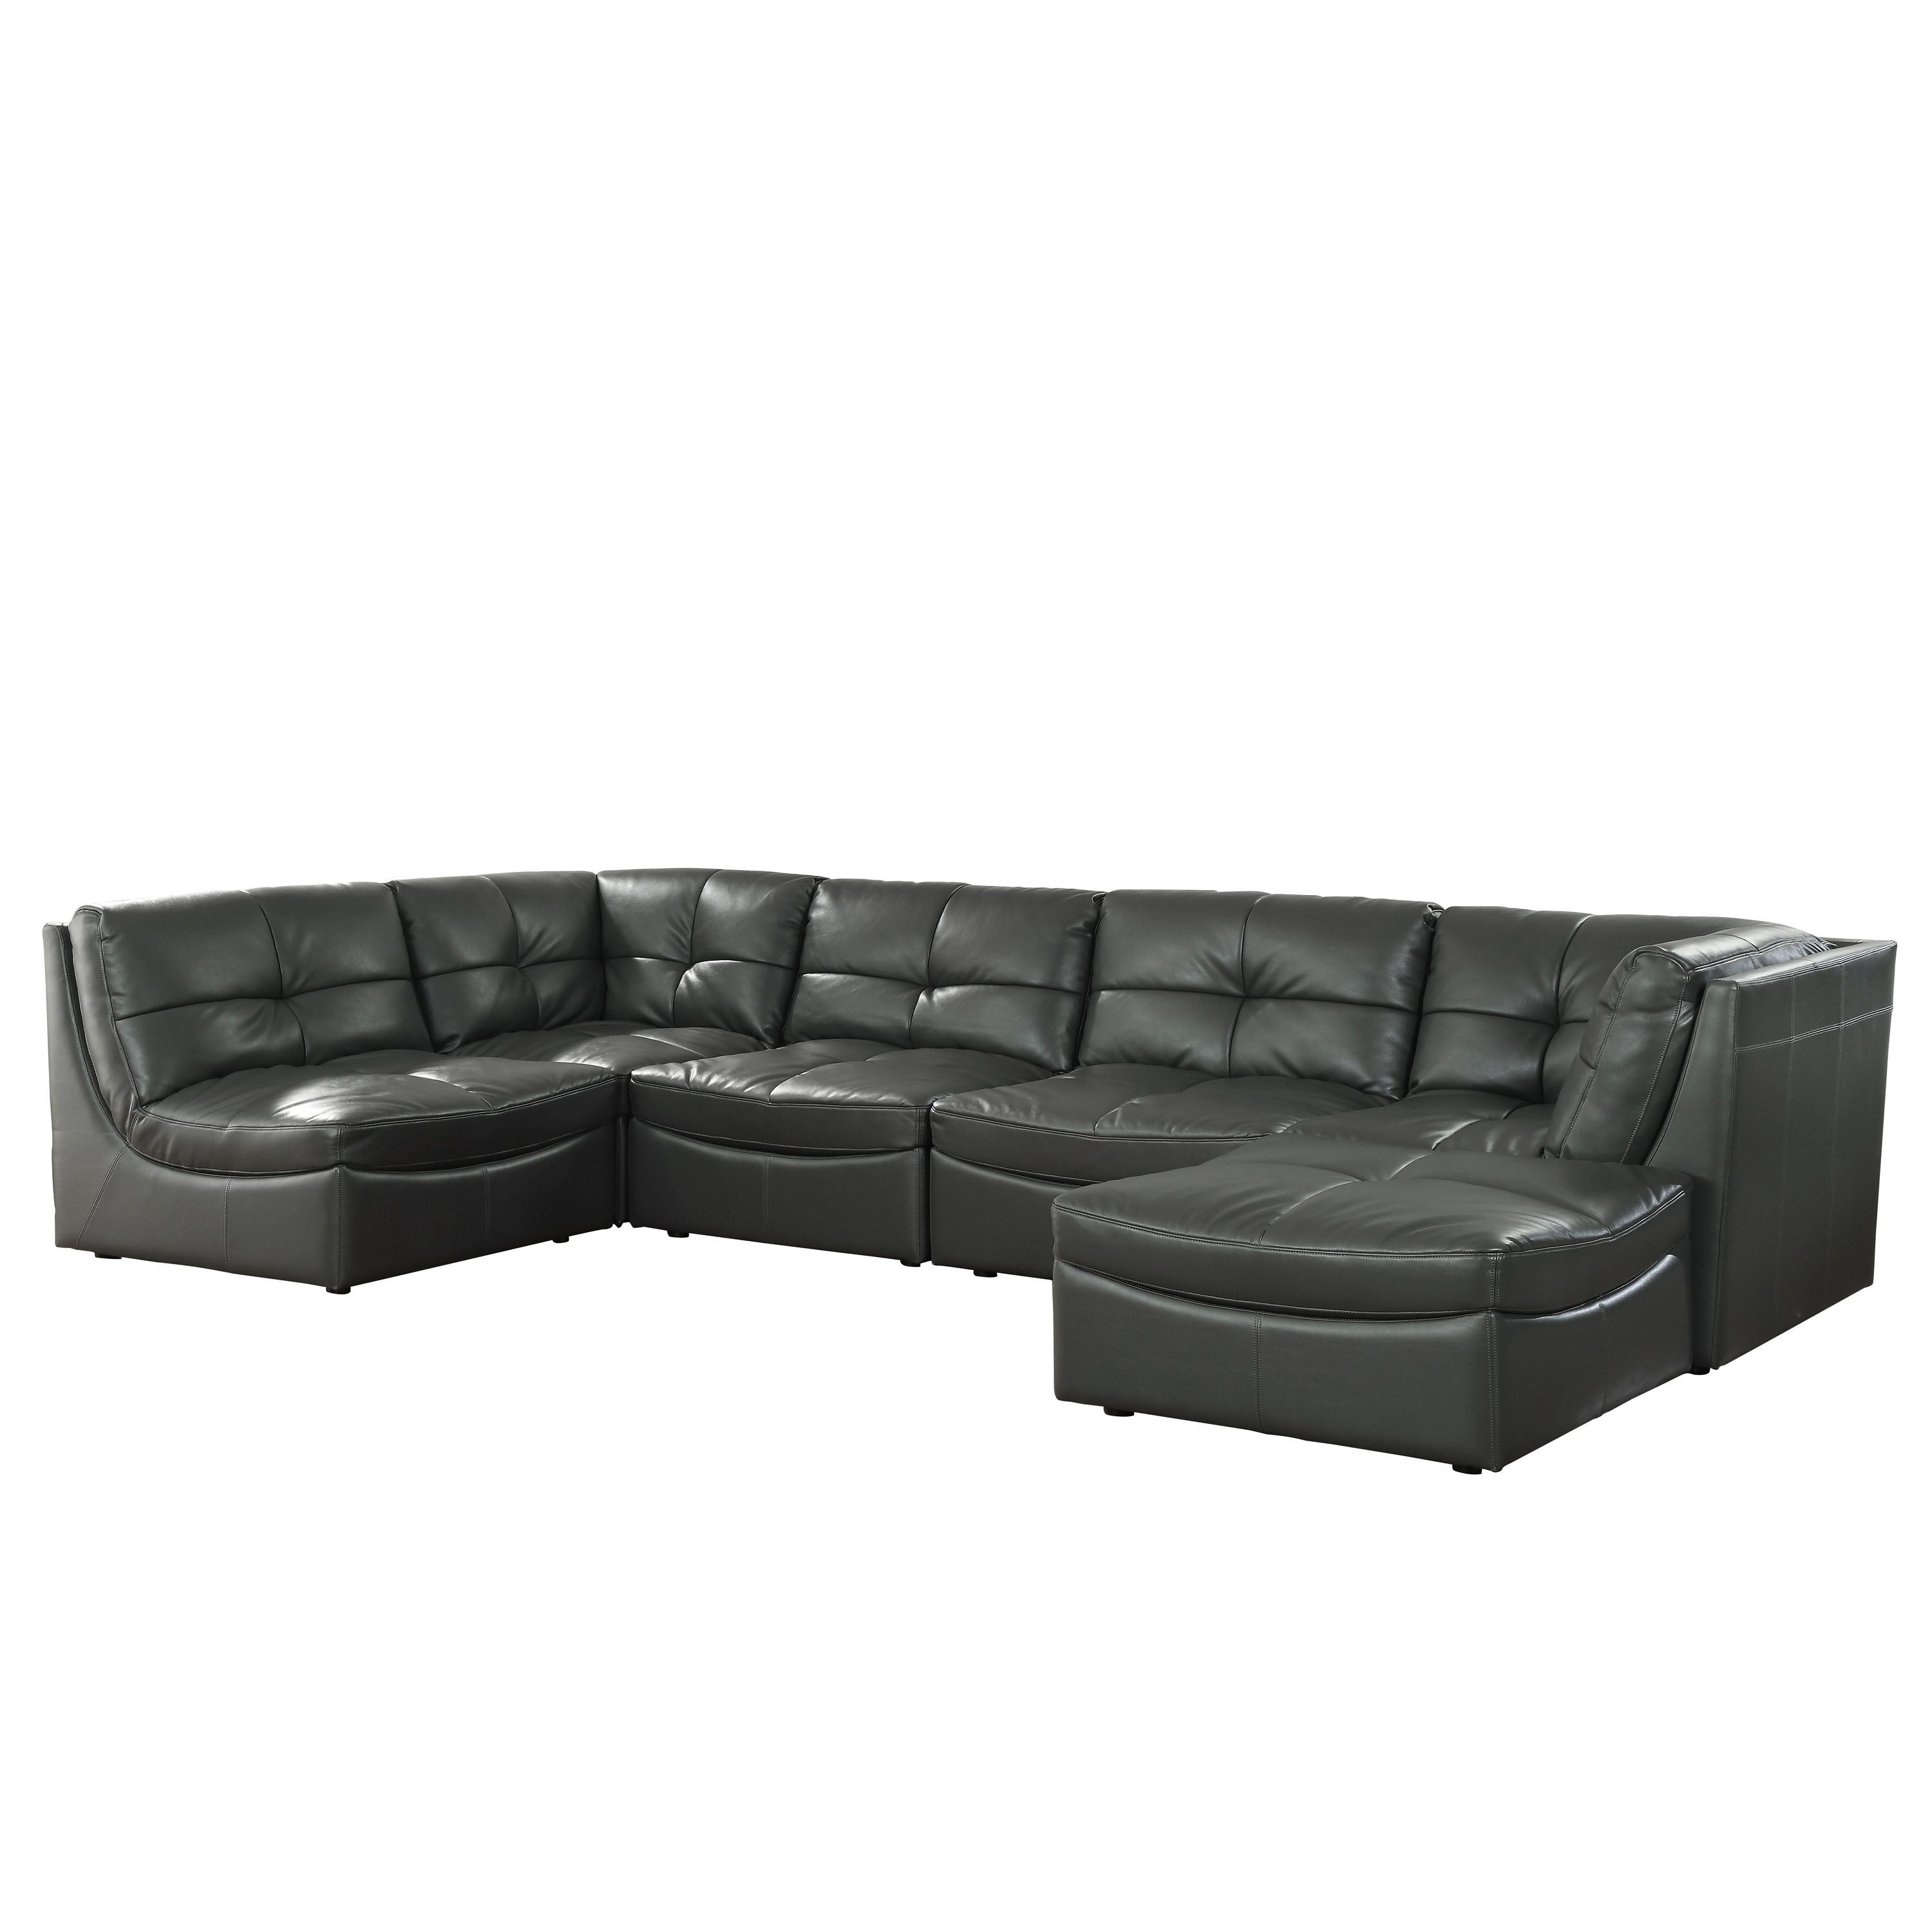 Furniture Of America Rile Grey 6 Piece Modular Sectional With Ottoman